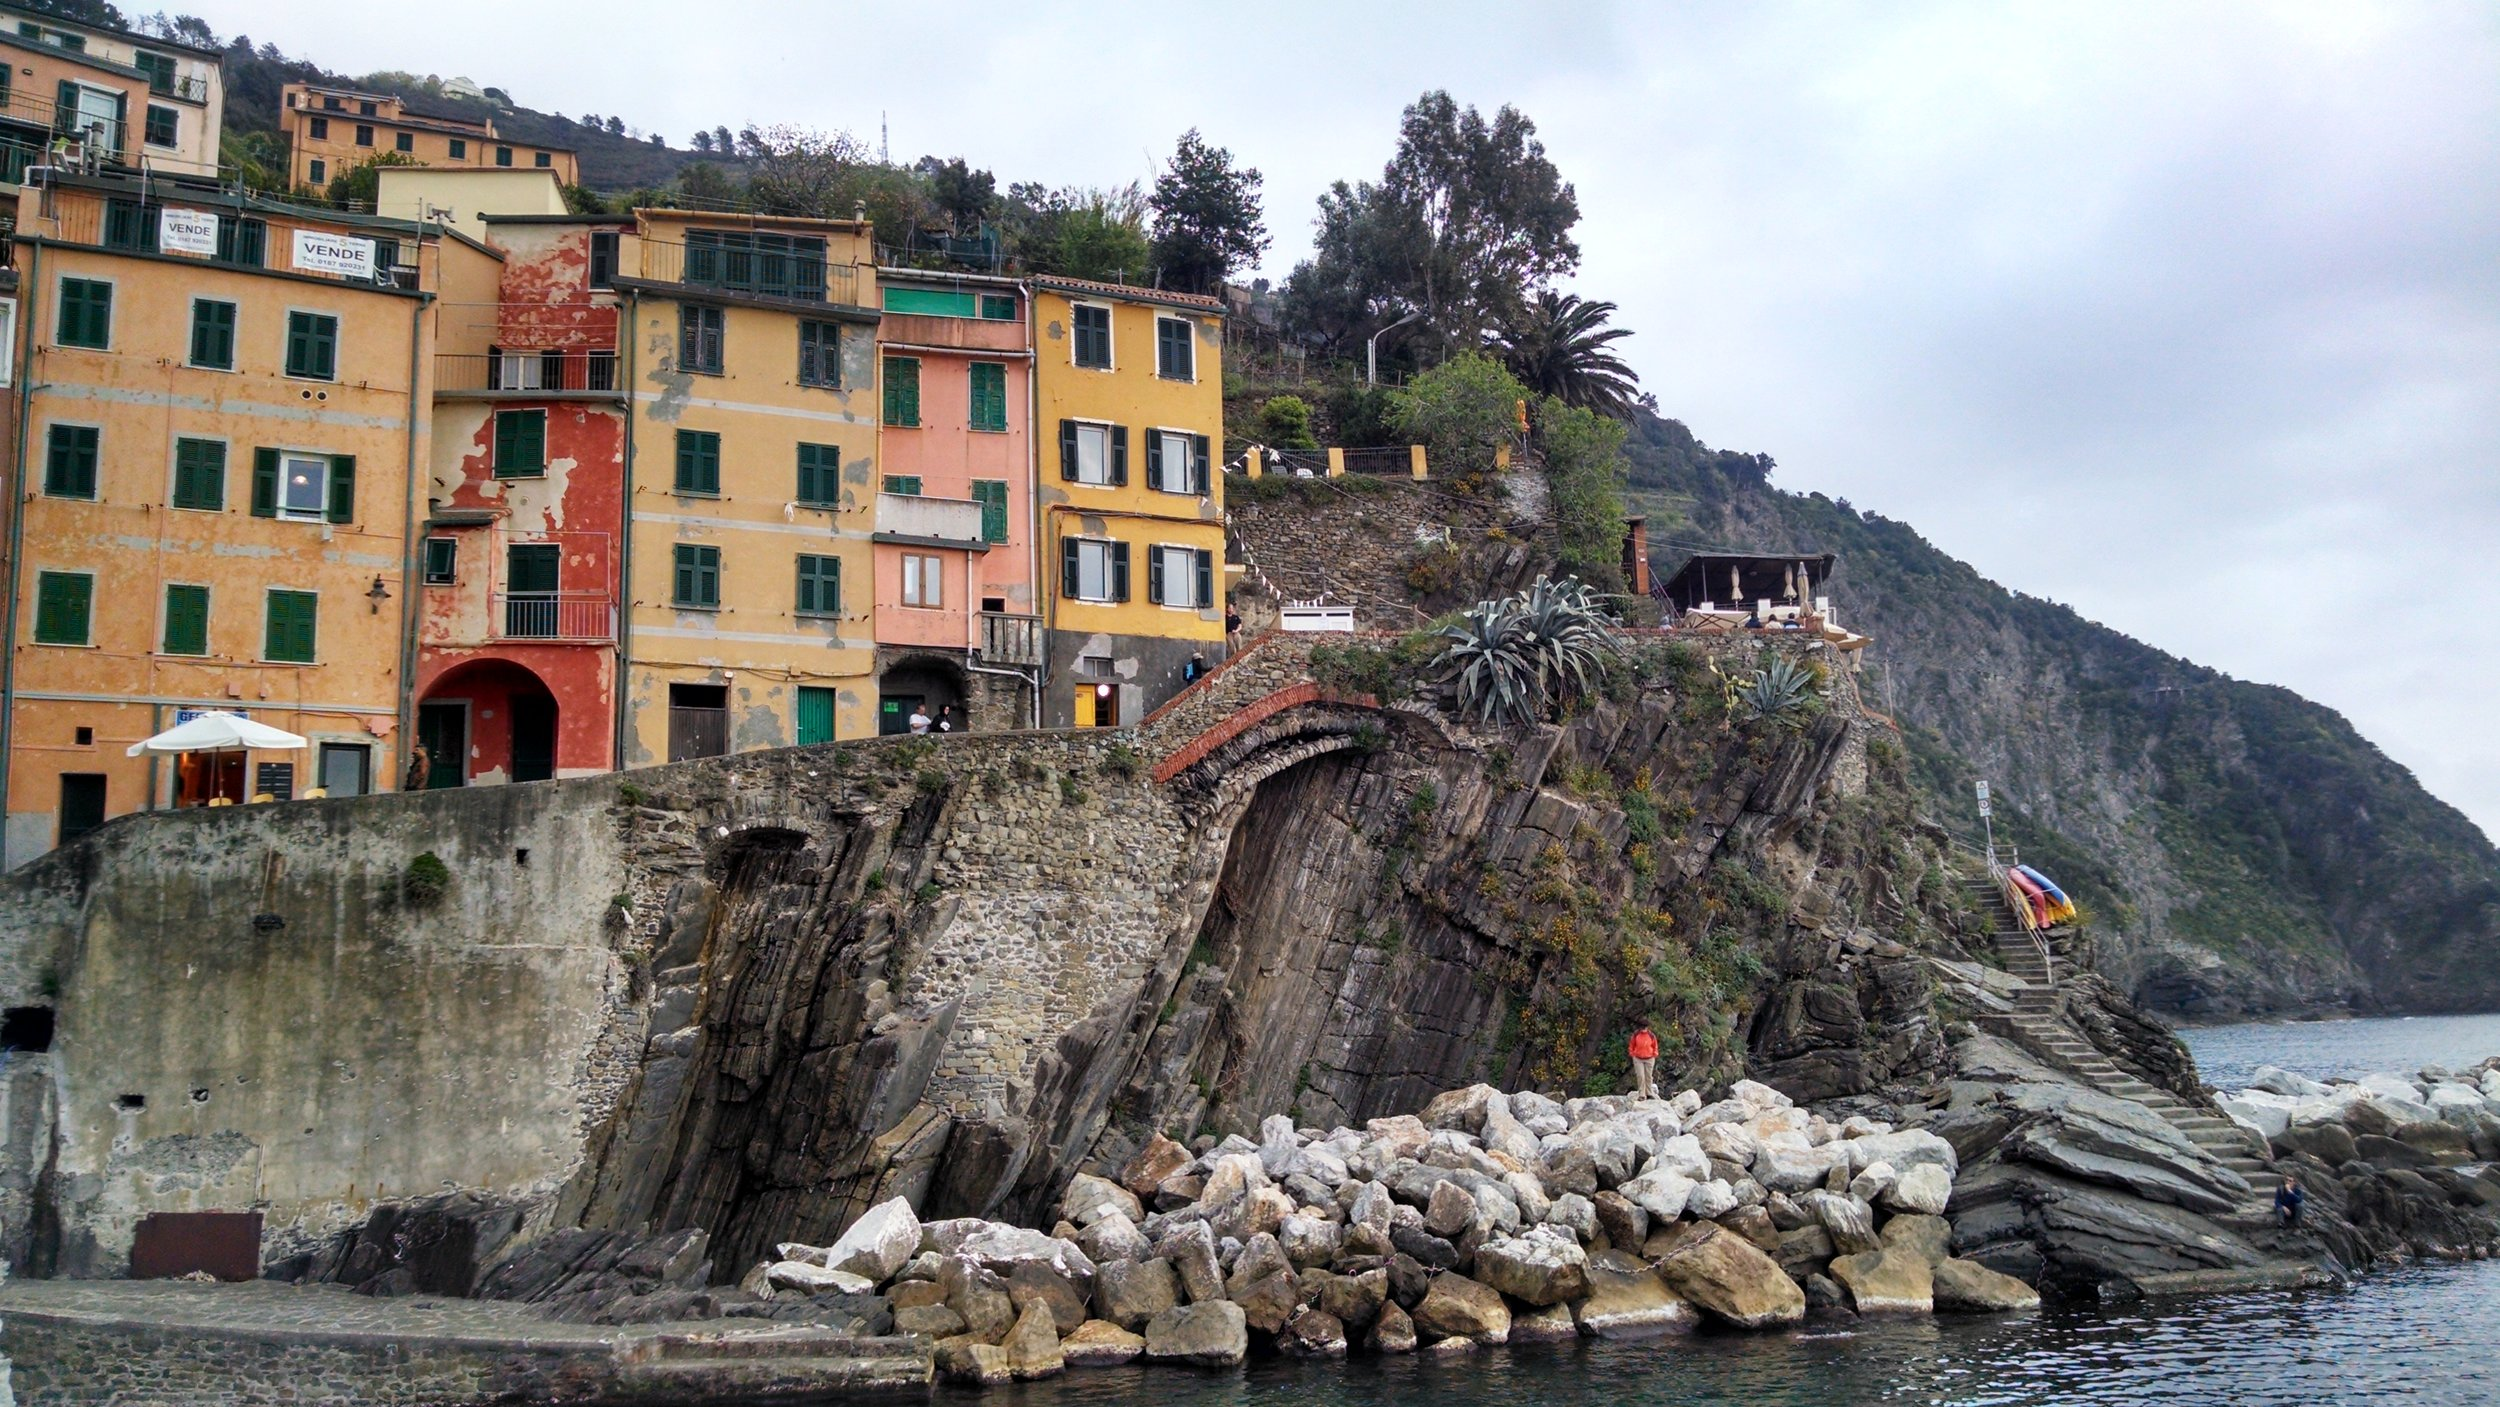 Spent a weekend hiking the Cinque Terre - a set of five, colorful fishing villages along the coast